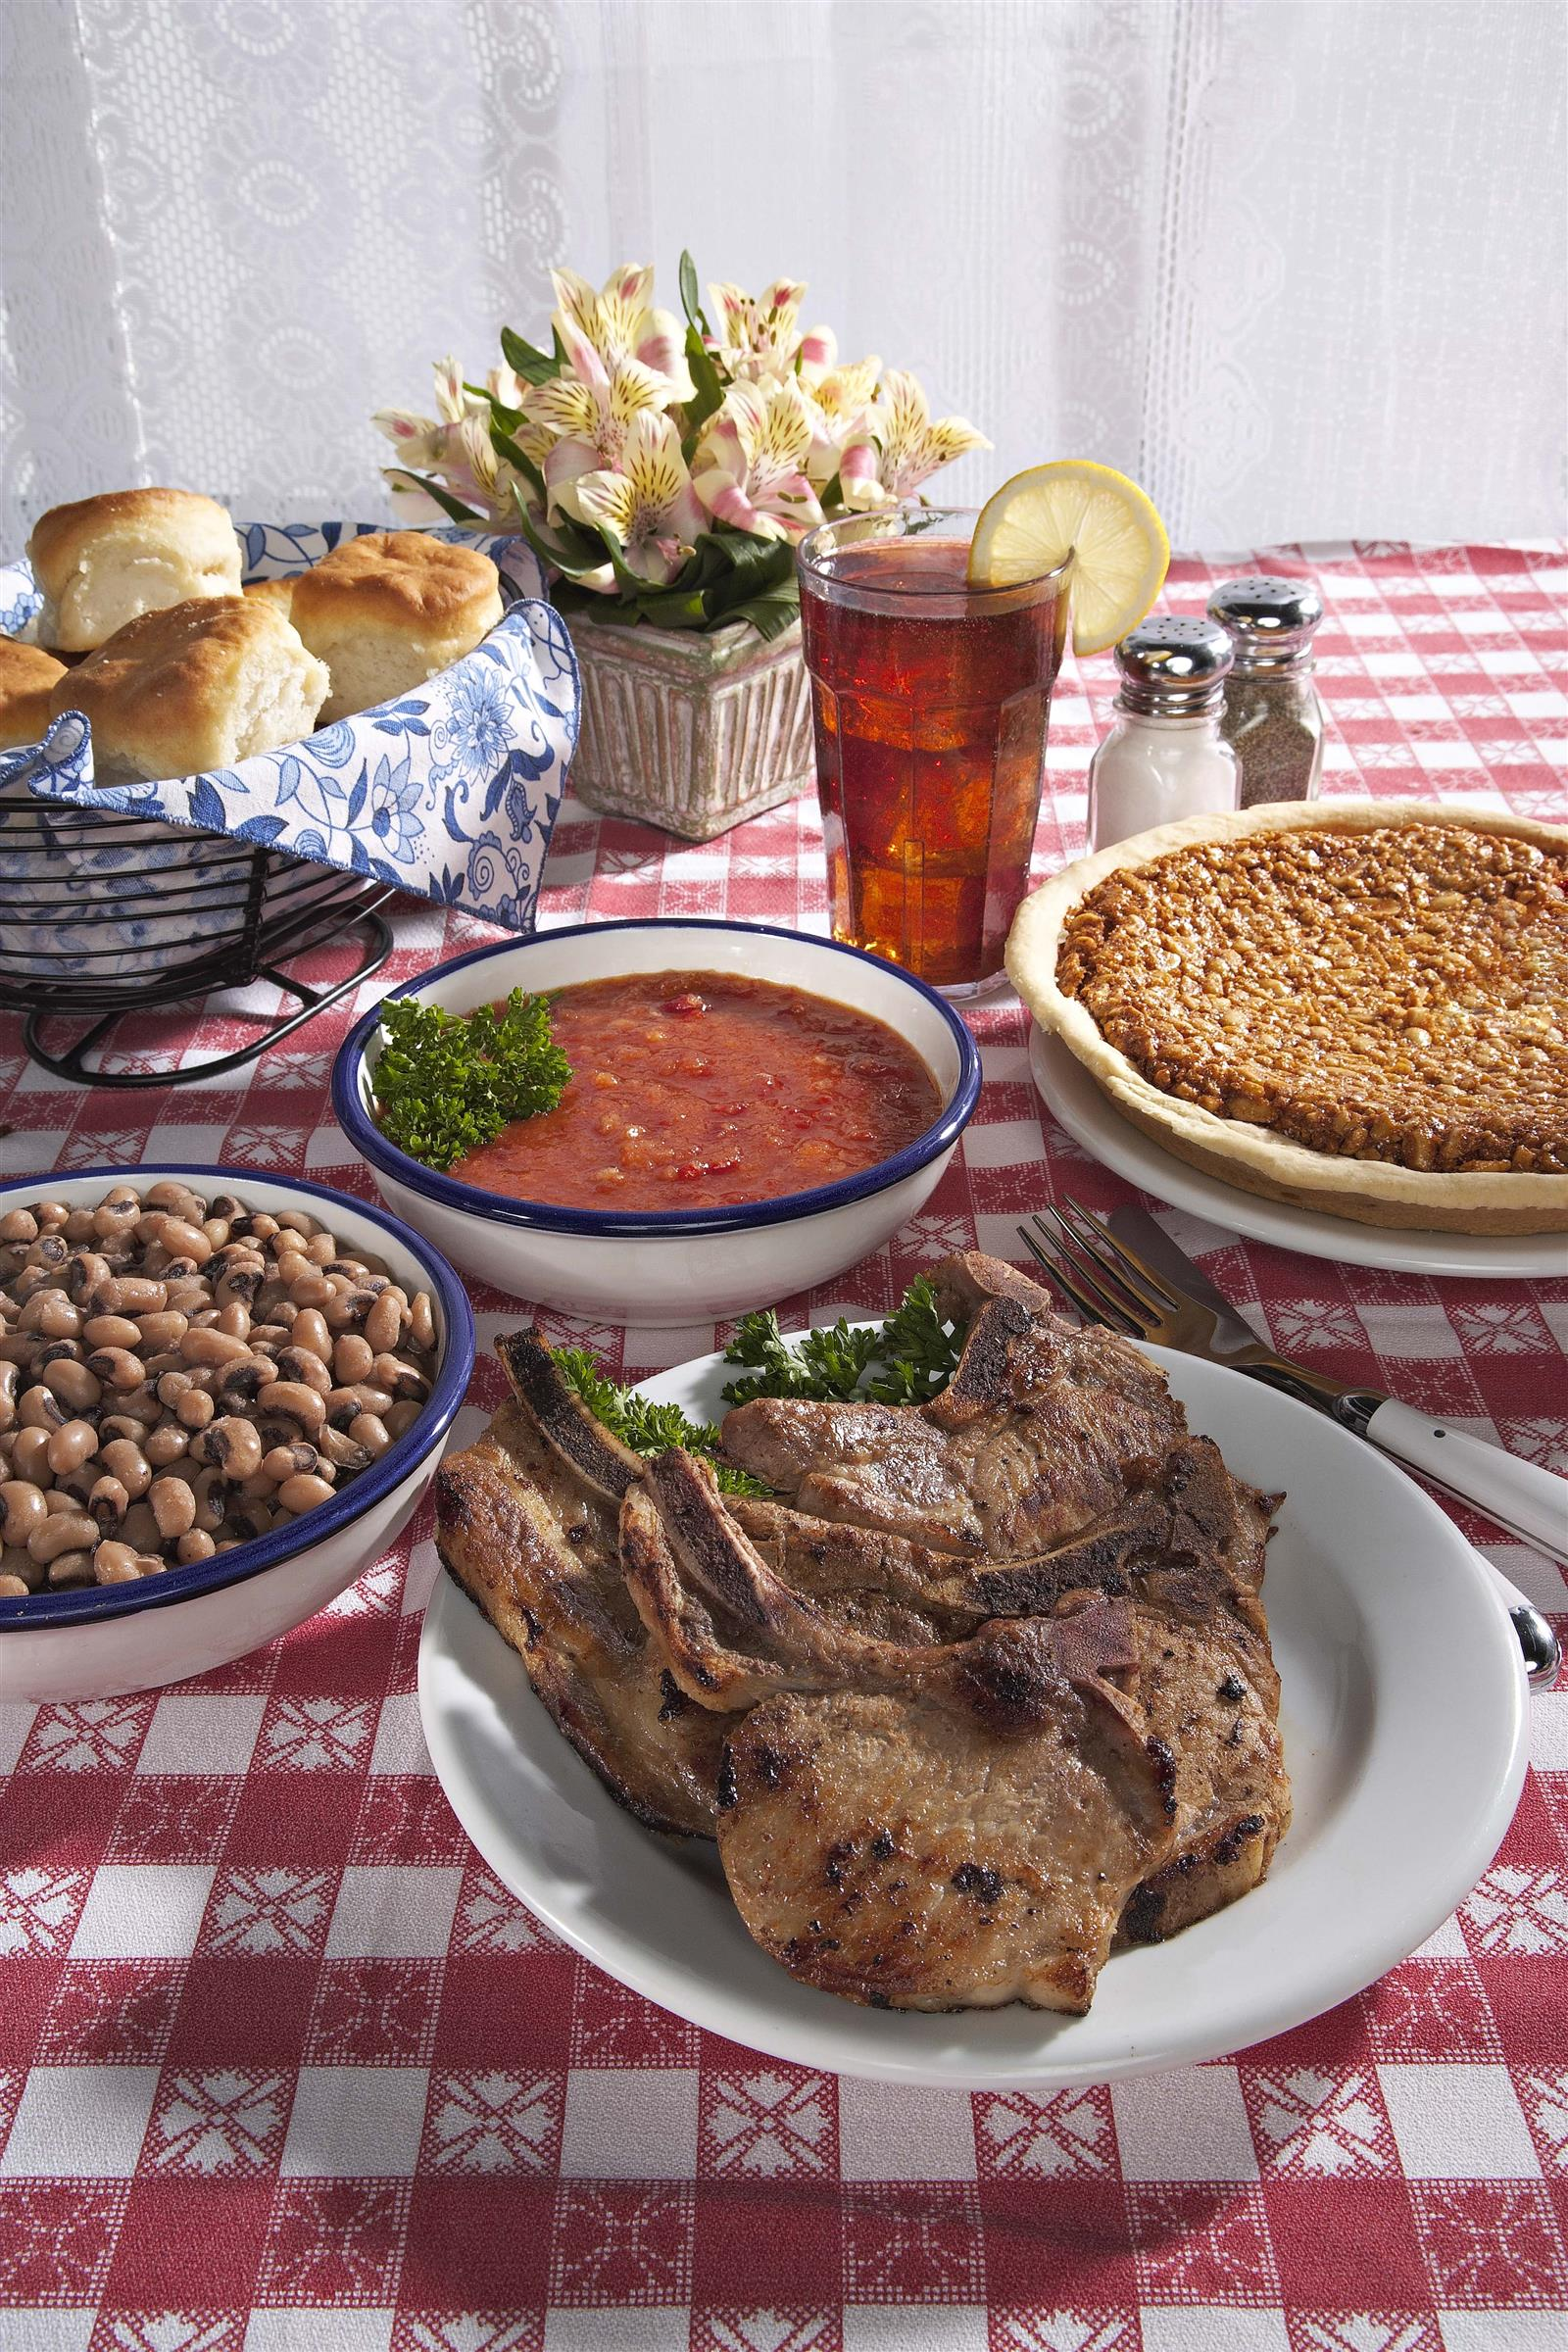 A table filled with different meals, such as soup, pork, biscuits, and a pie.